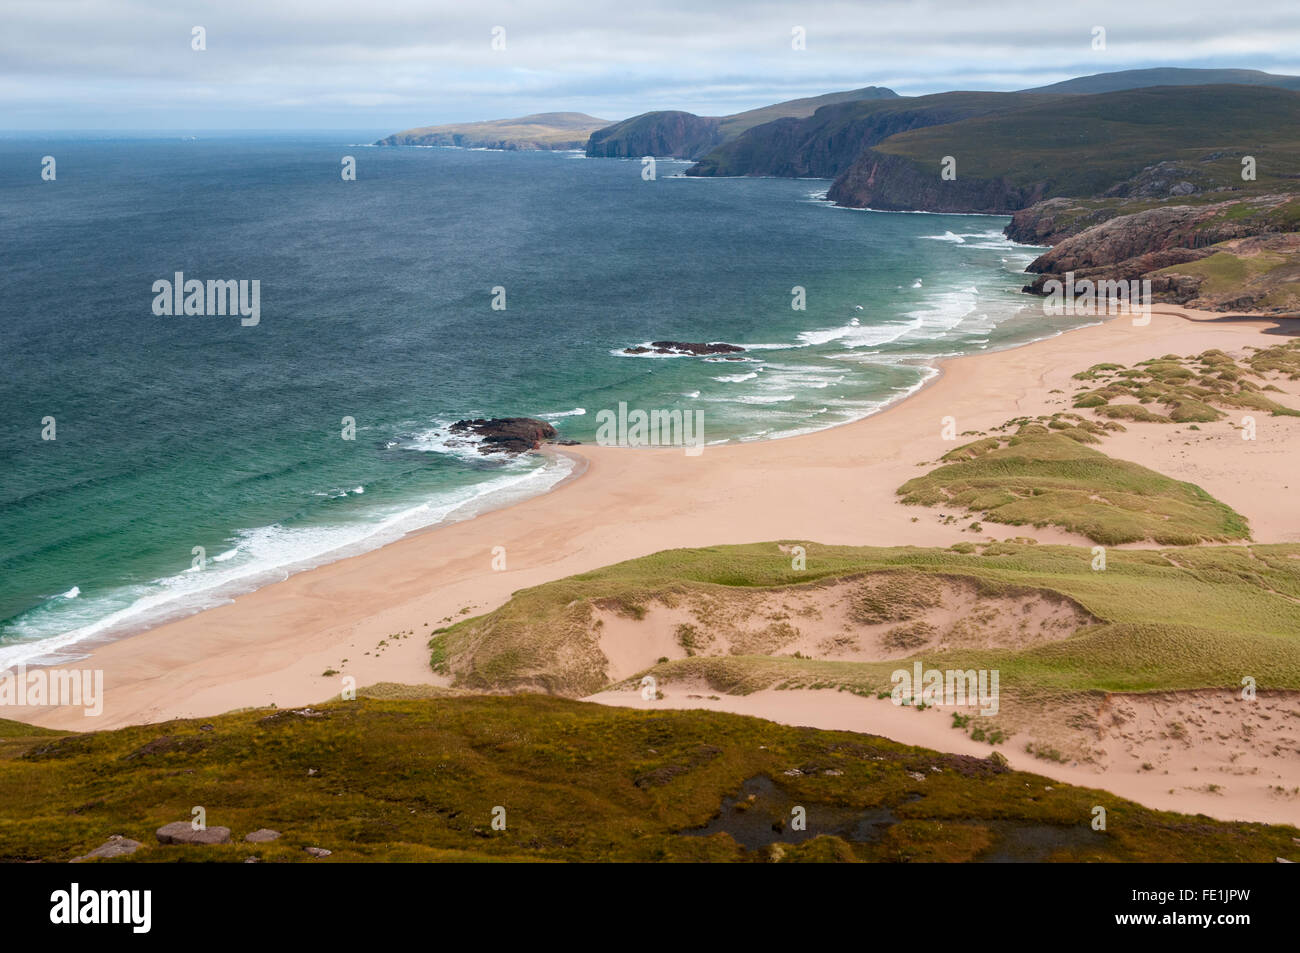 A view of the beach Tràigh Shanabhait at Sandwood Bay on the Cape Wrath peninsula in Sutherland, Scotland. - Stock Image